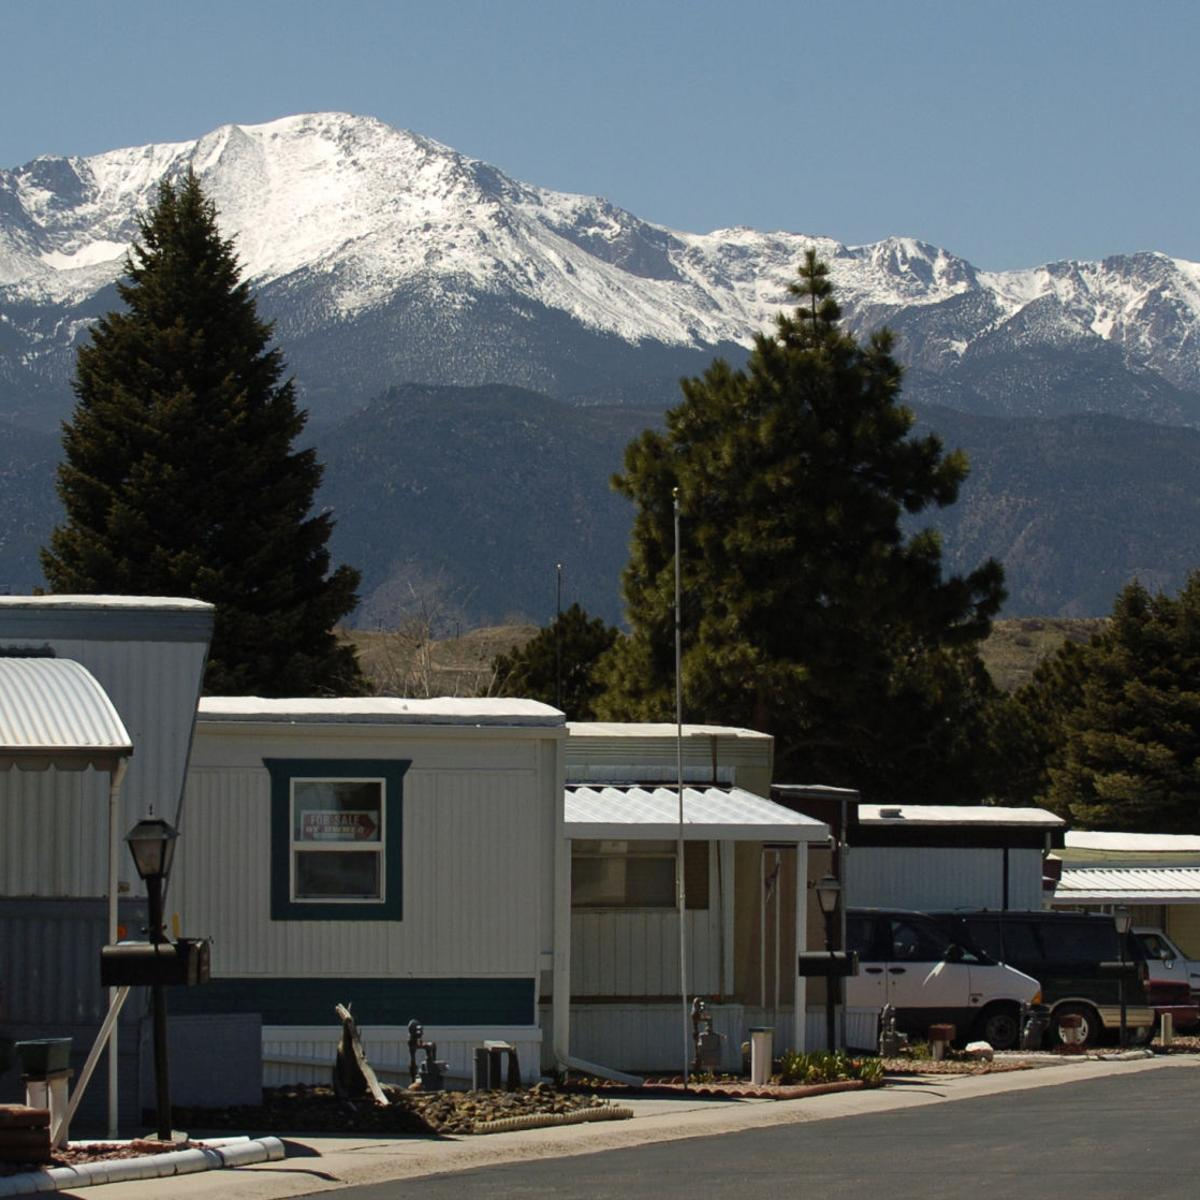 Colorado House passes new rules for mobile home parks